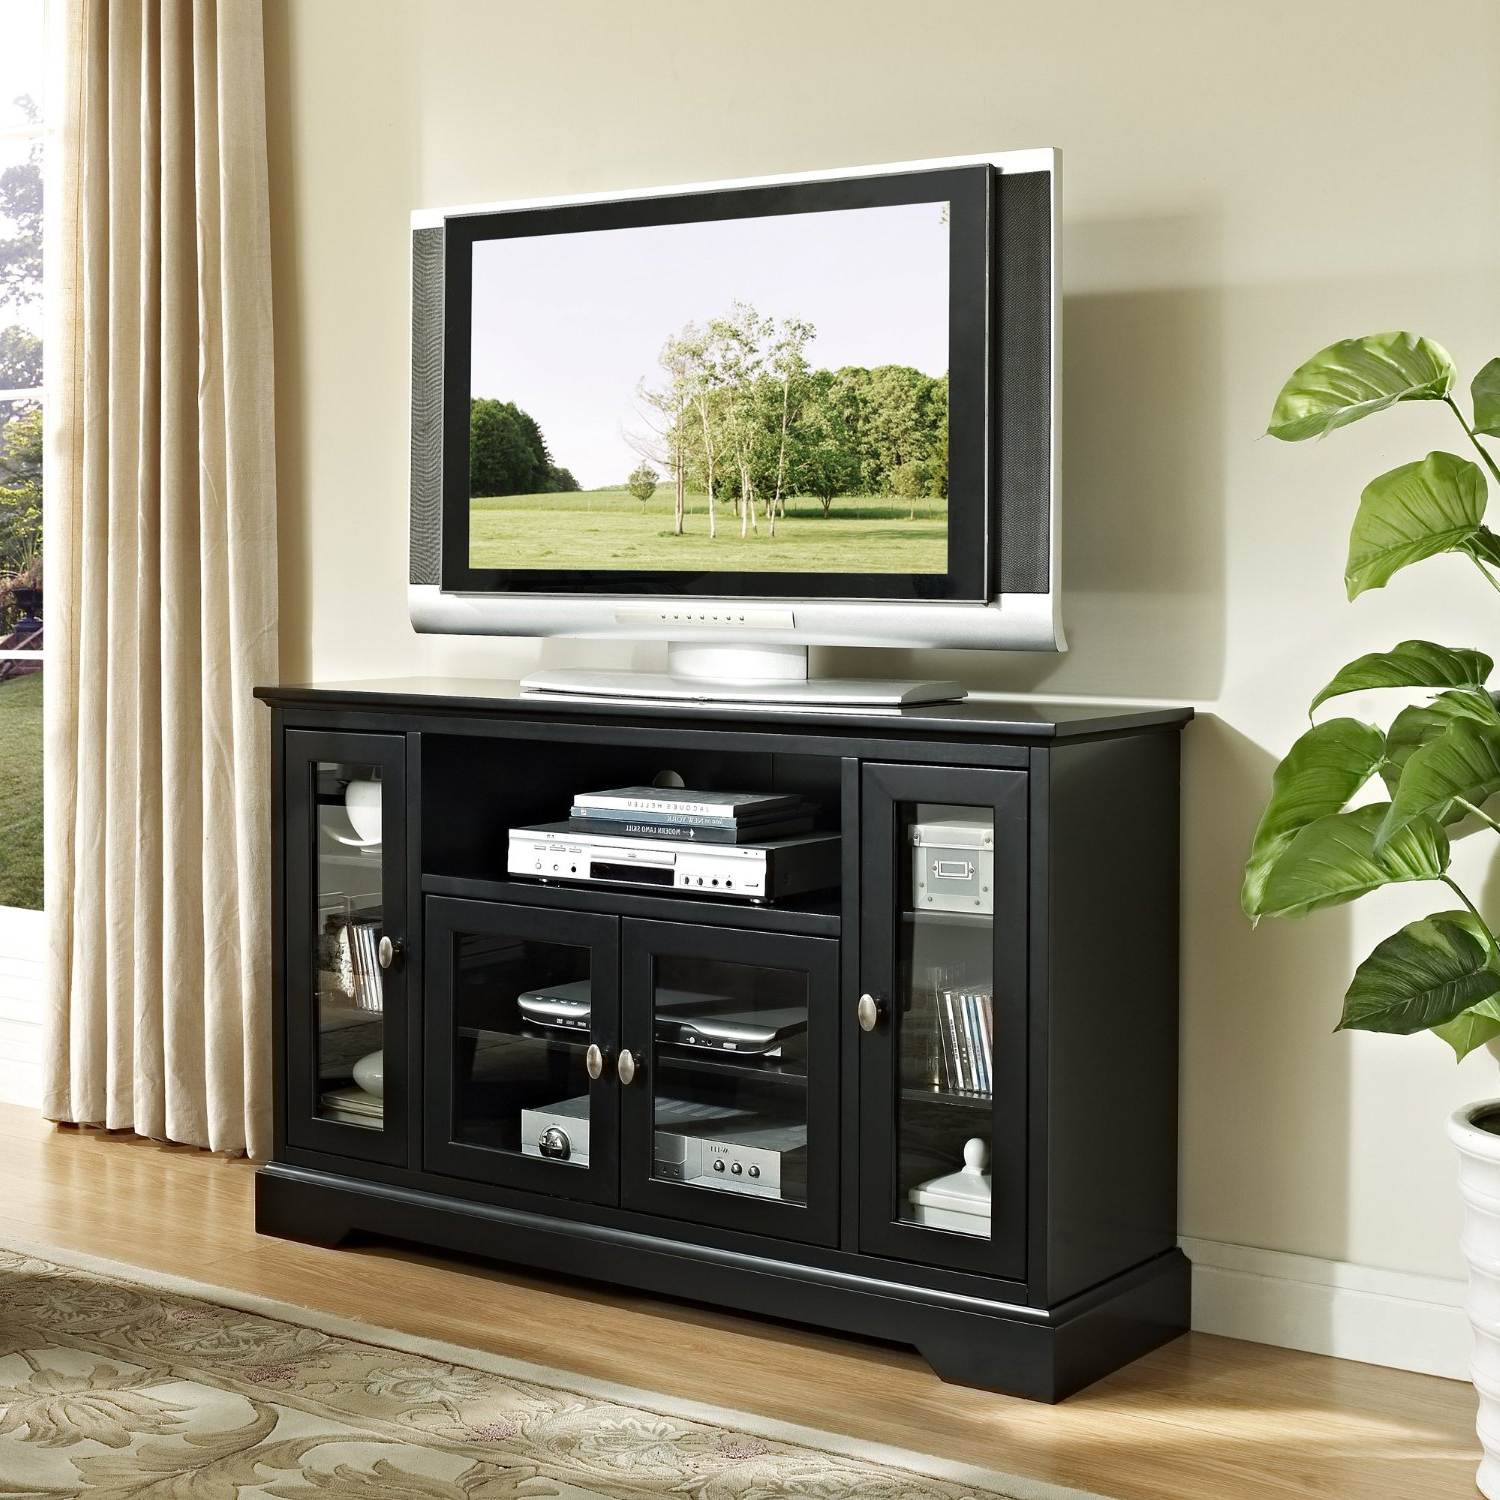 Modern Tv Stand Ikea Hemnes Entertainment Wall Units With Fireplace Regarding Forma 65 Inch Tv Stands (View 9 of 20)